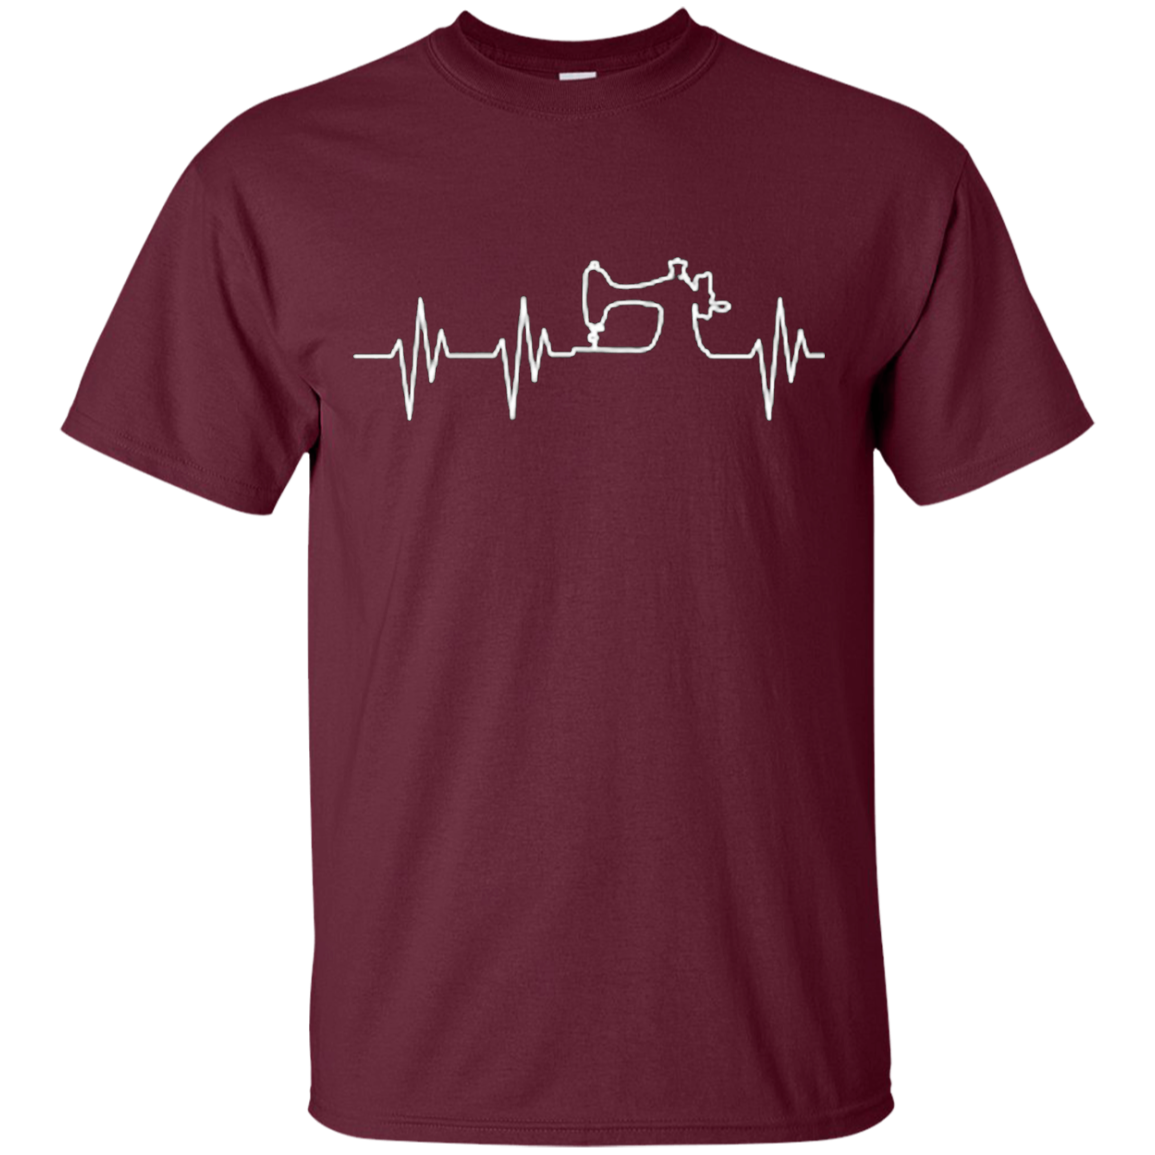 Sewing Machine Heartbeat T-Shirt Crafting Needle